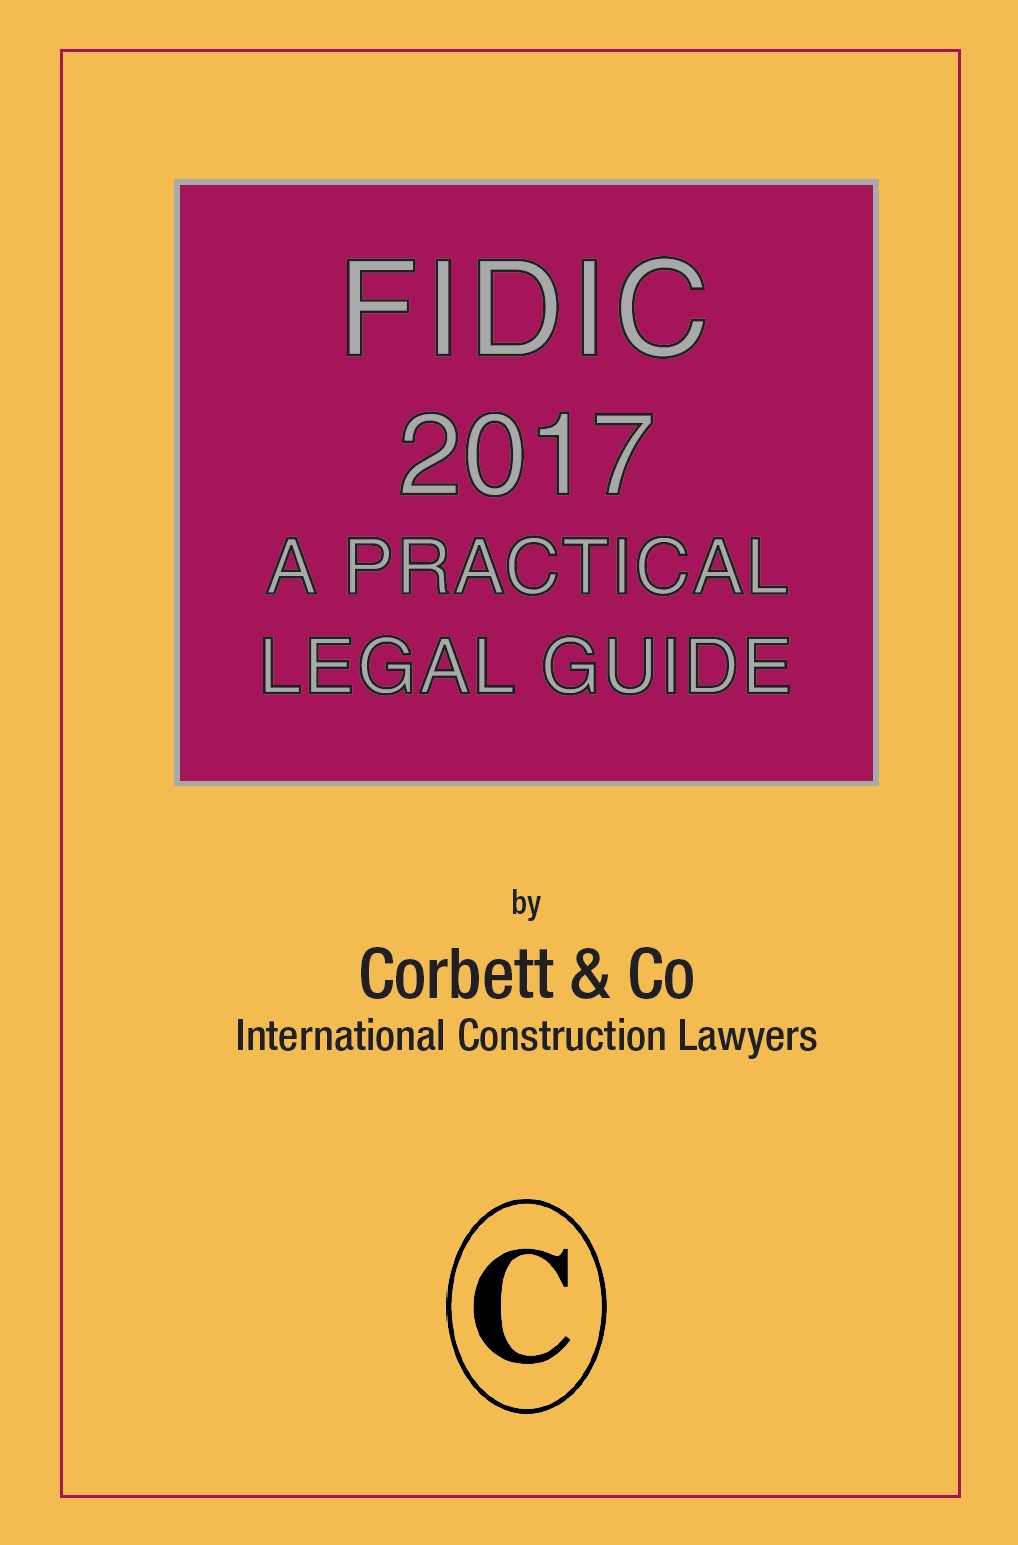 Book_Cover_FIDIC_2017.jpg